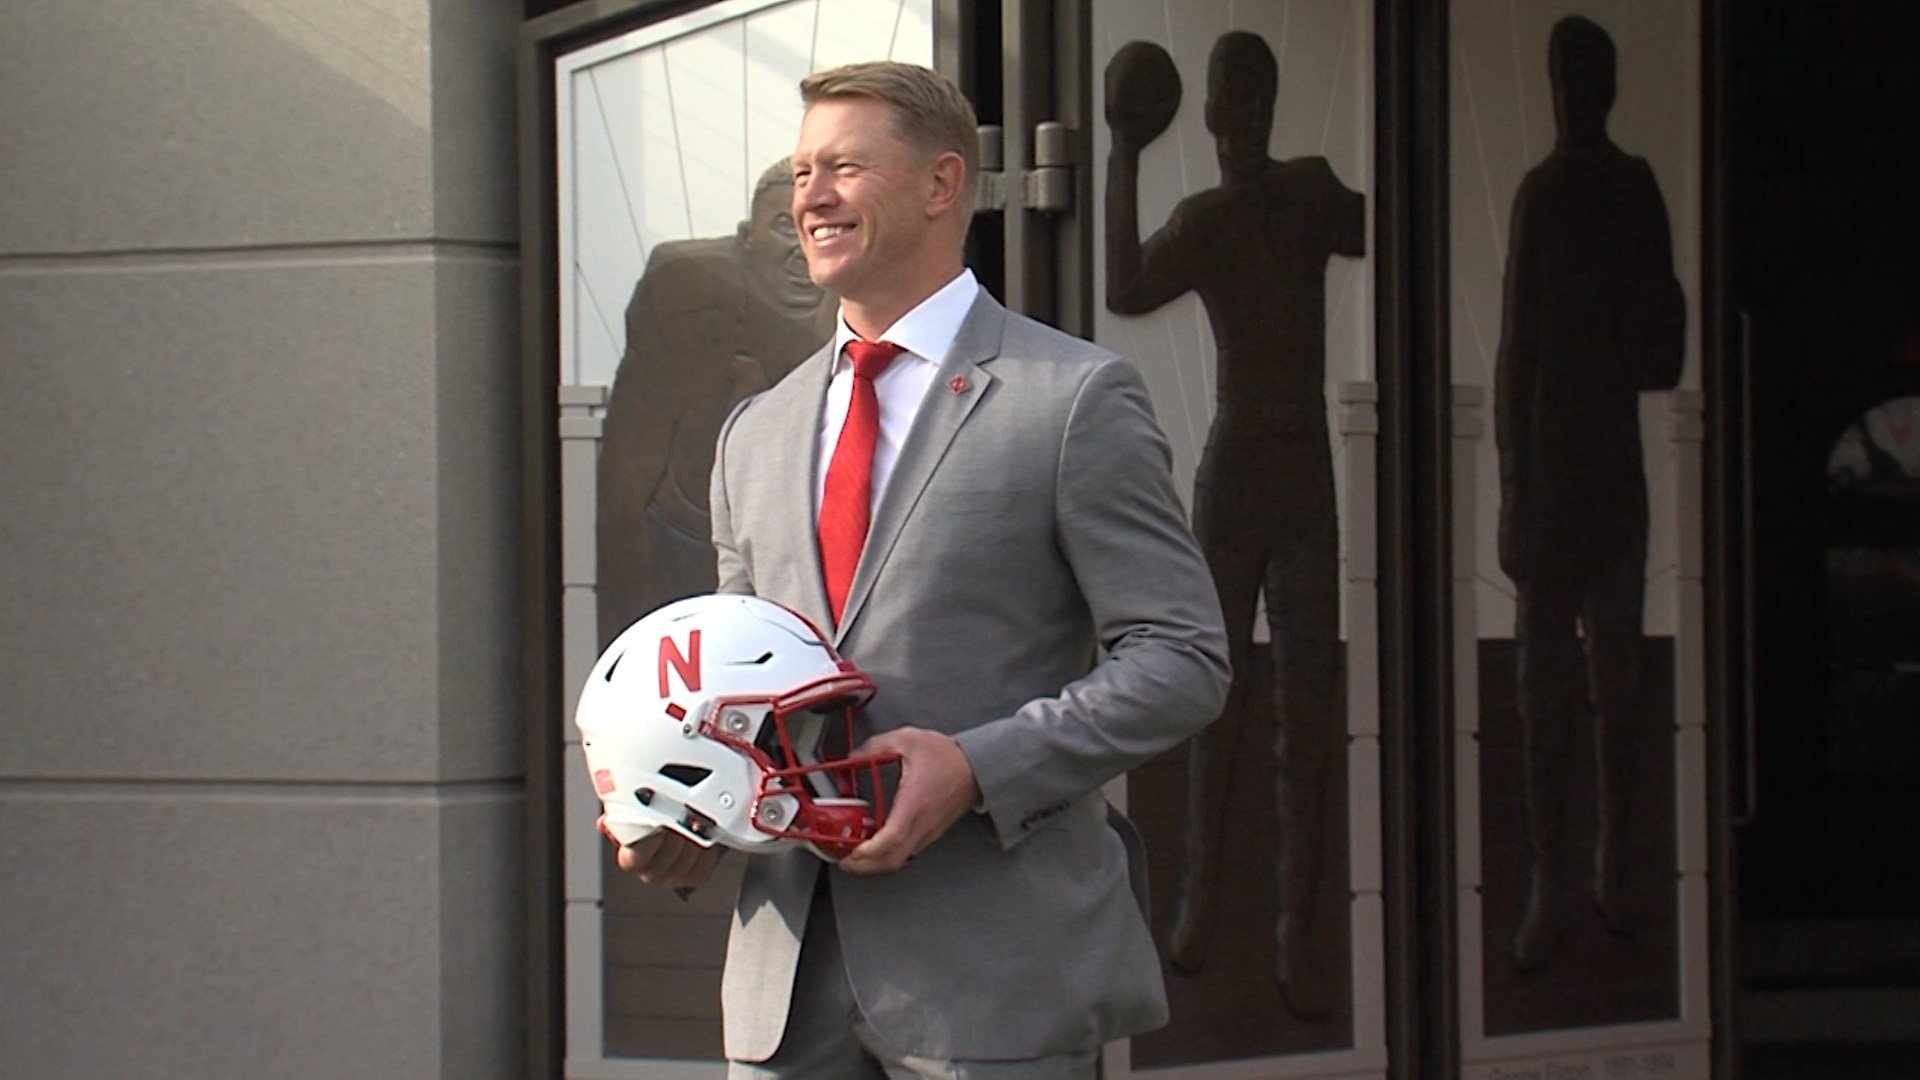 Details Of What Was Taken From Scott Frost's House Have Emerged